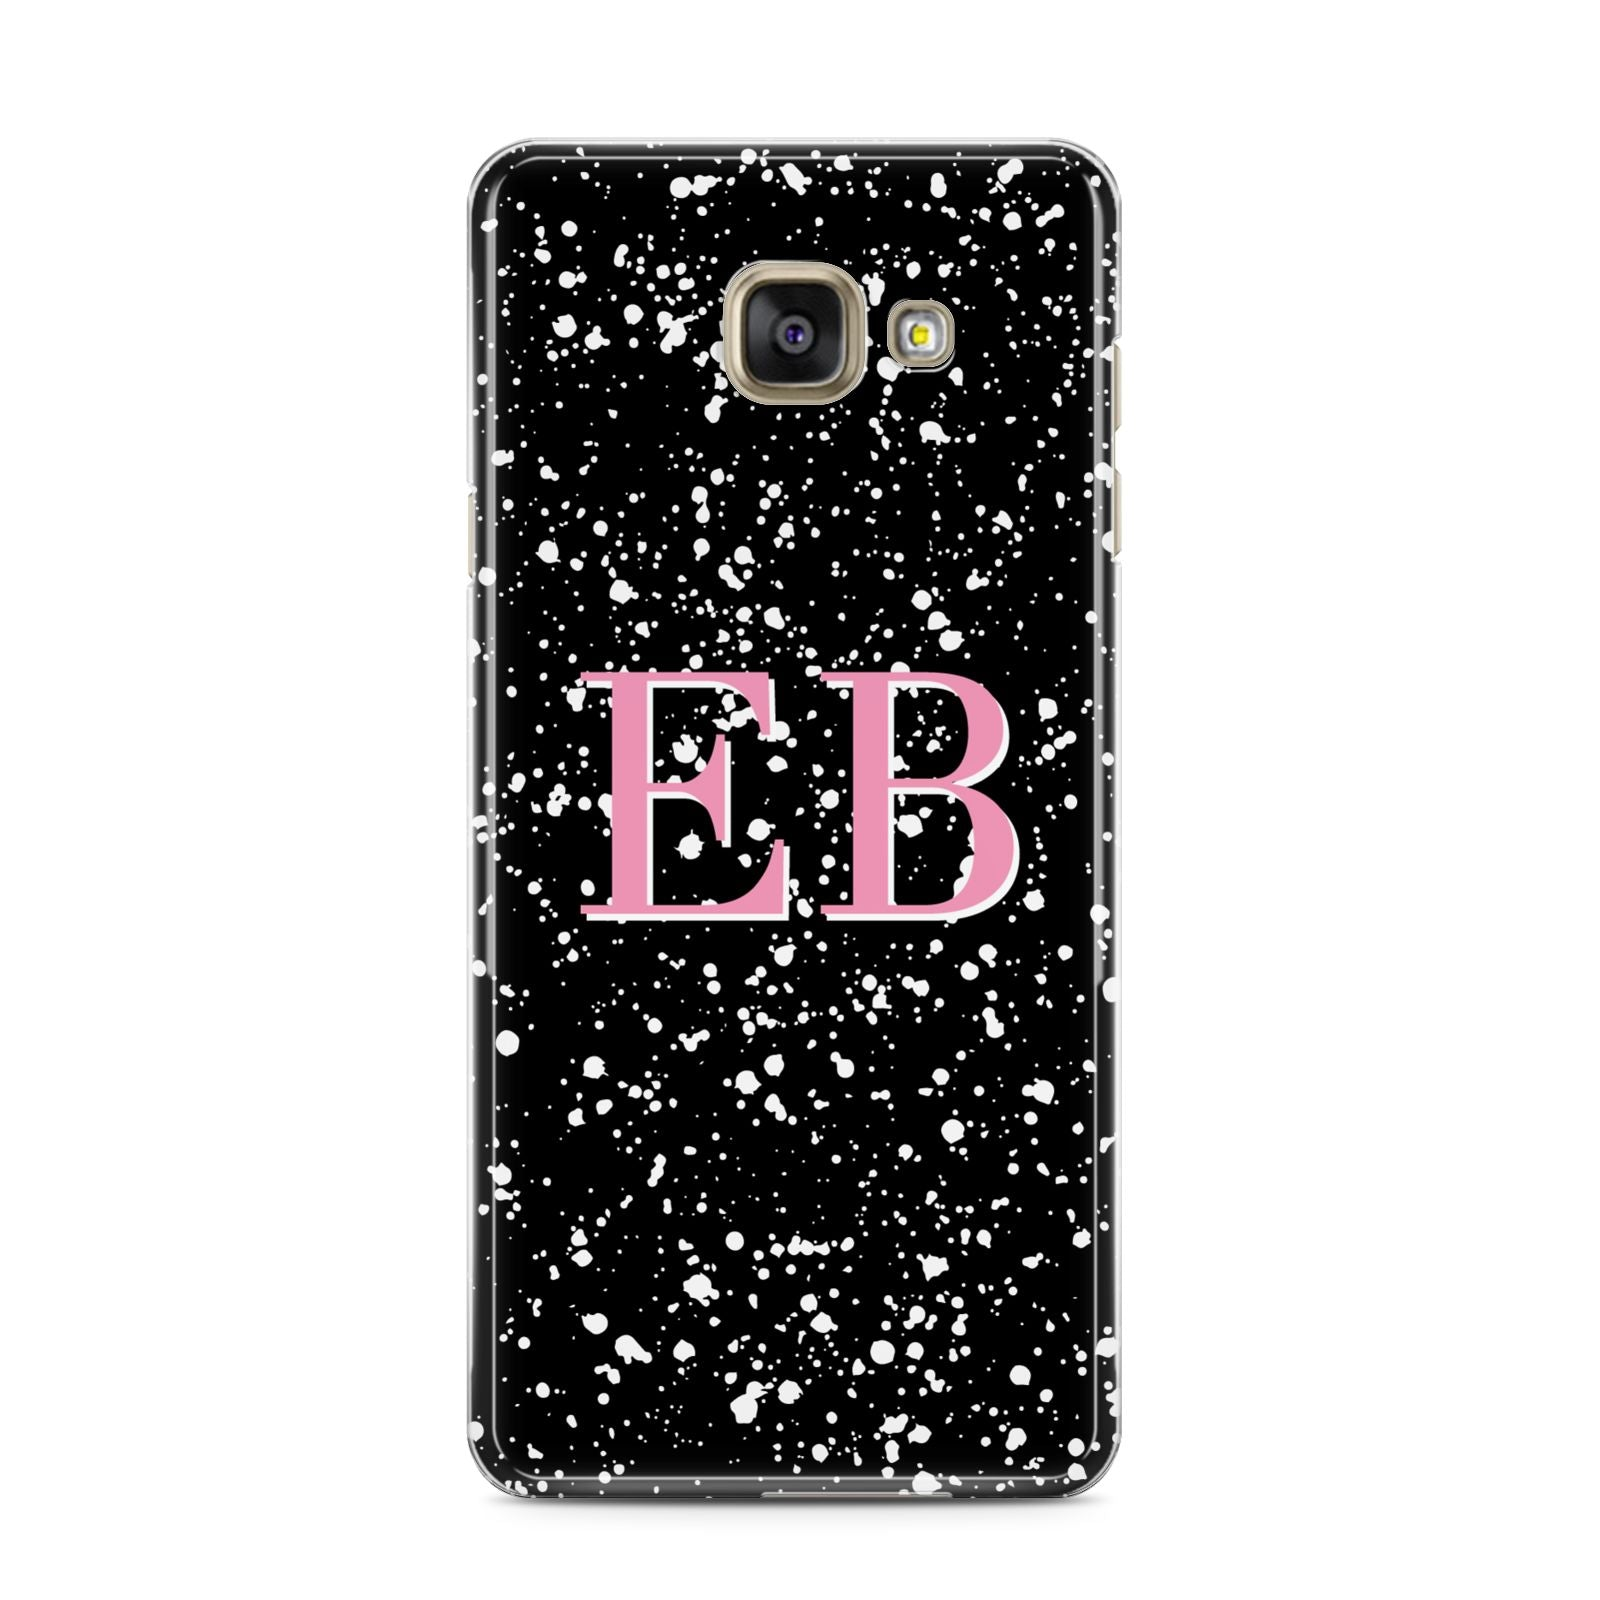 Personalised Black Ink Splat Initials Samsung Galaxy A3 2016 Case on gold phone